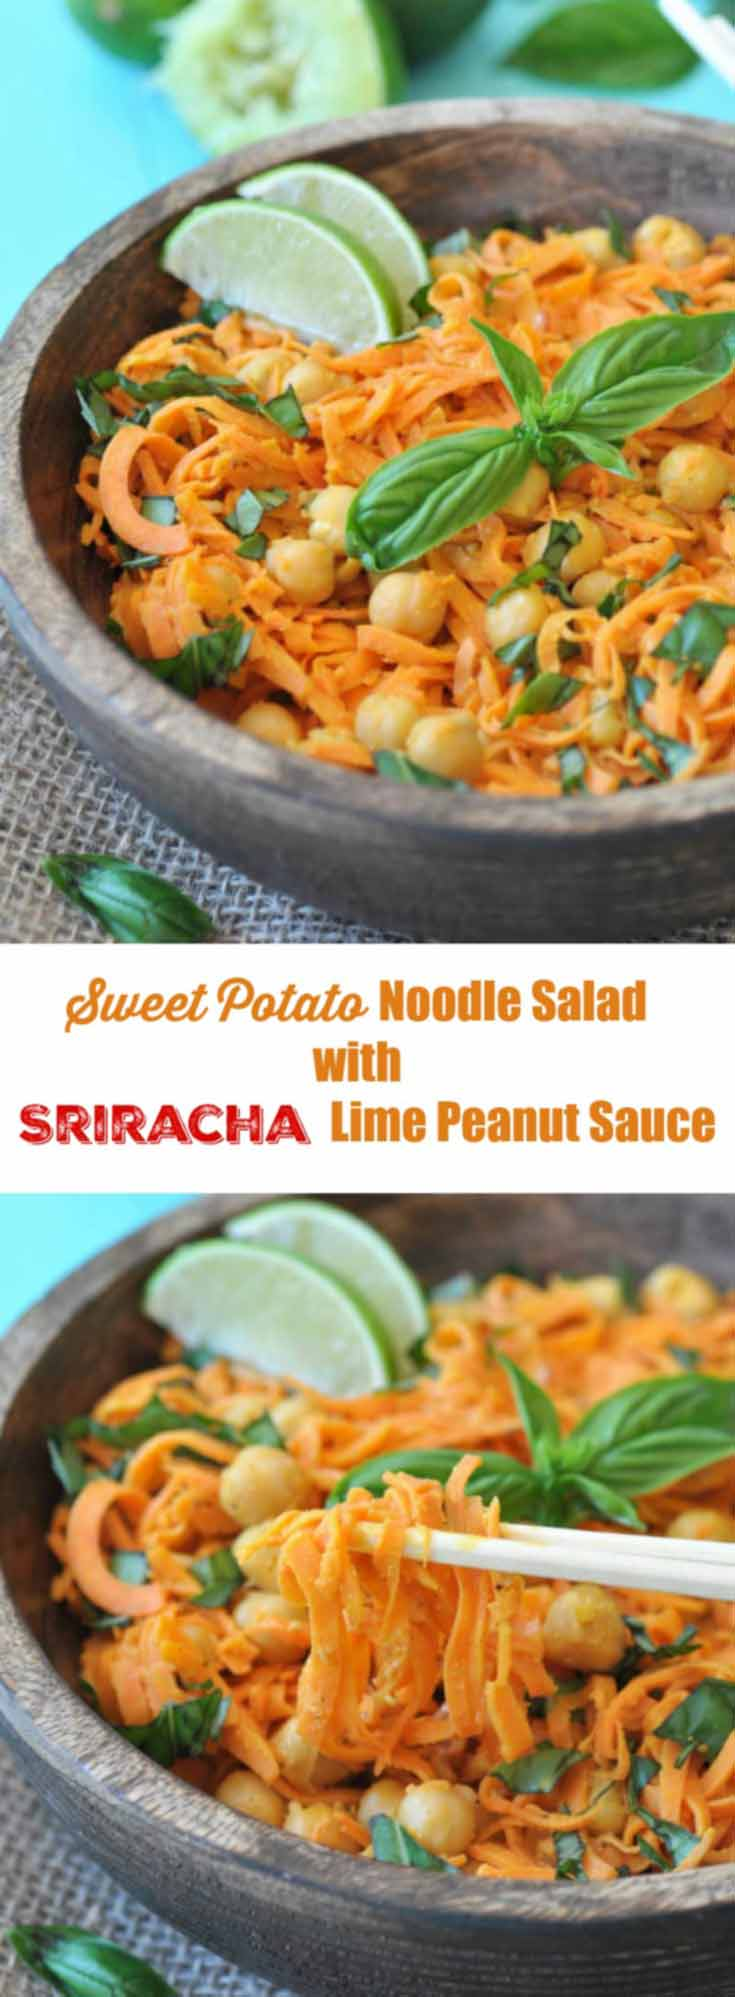 A Pinterest pin for spiralized sweet potato salad with sriracha lime peanut sauce with 2 pictures of the salad in a wooden bowl.